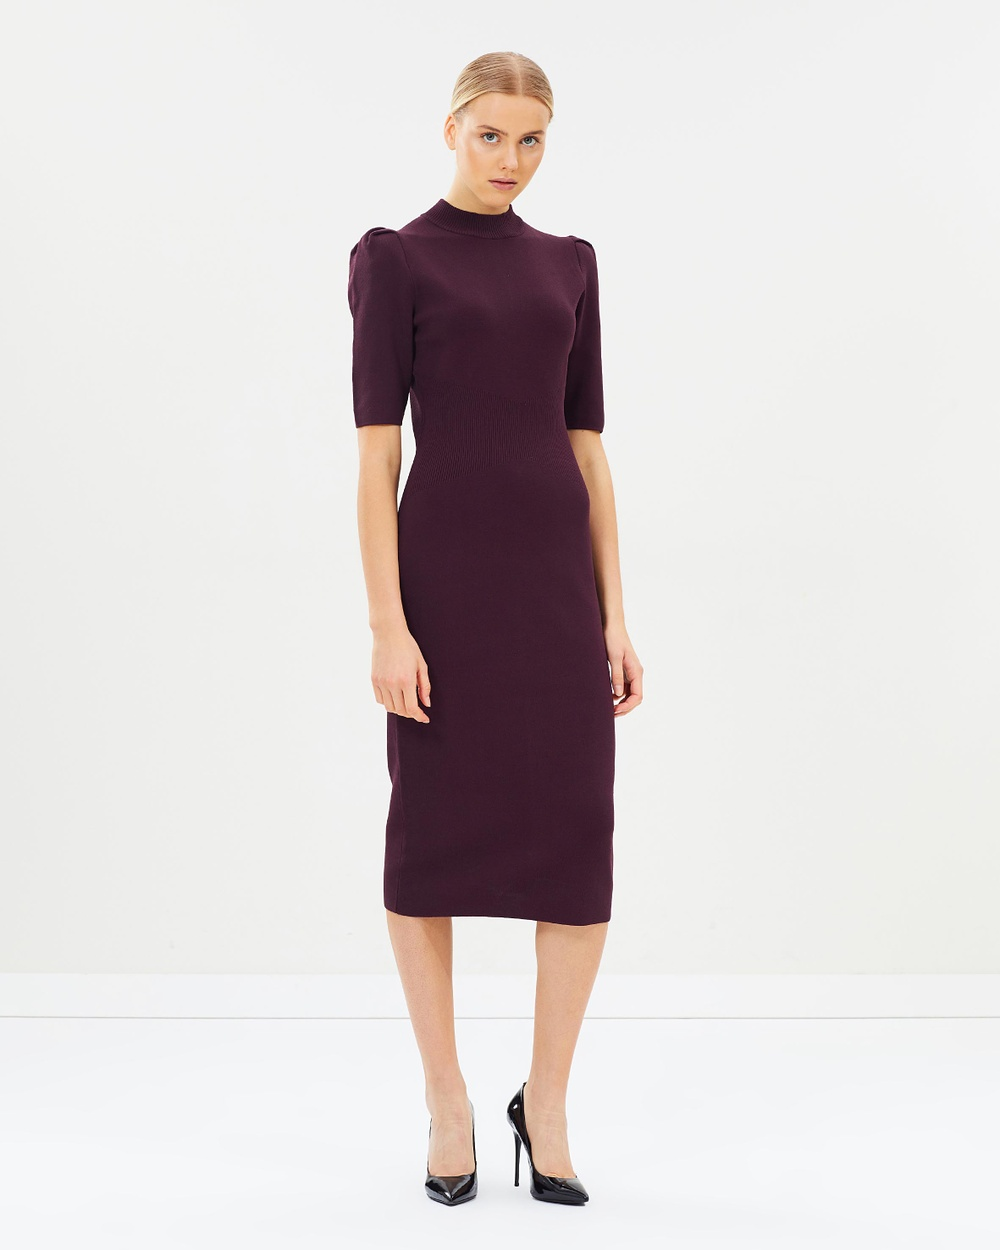 CAMILLA AND MARC Dyana Milano Midi Dress Bodycon Dresses Black Orchid Dyana Milano Midi Dress